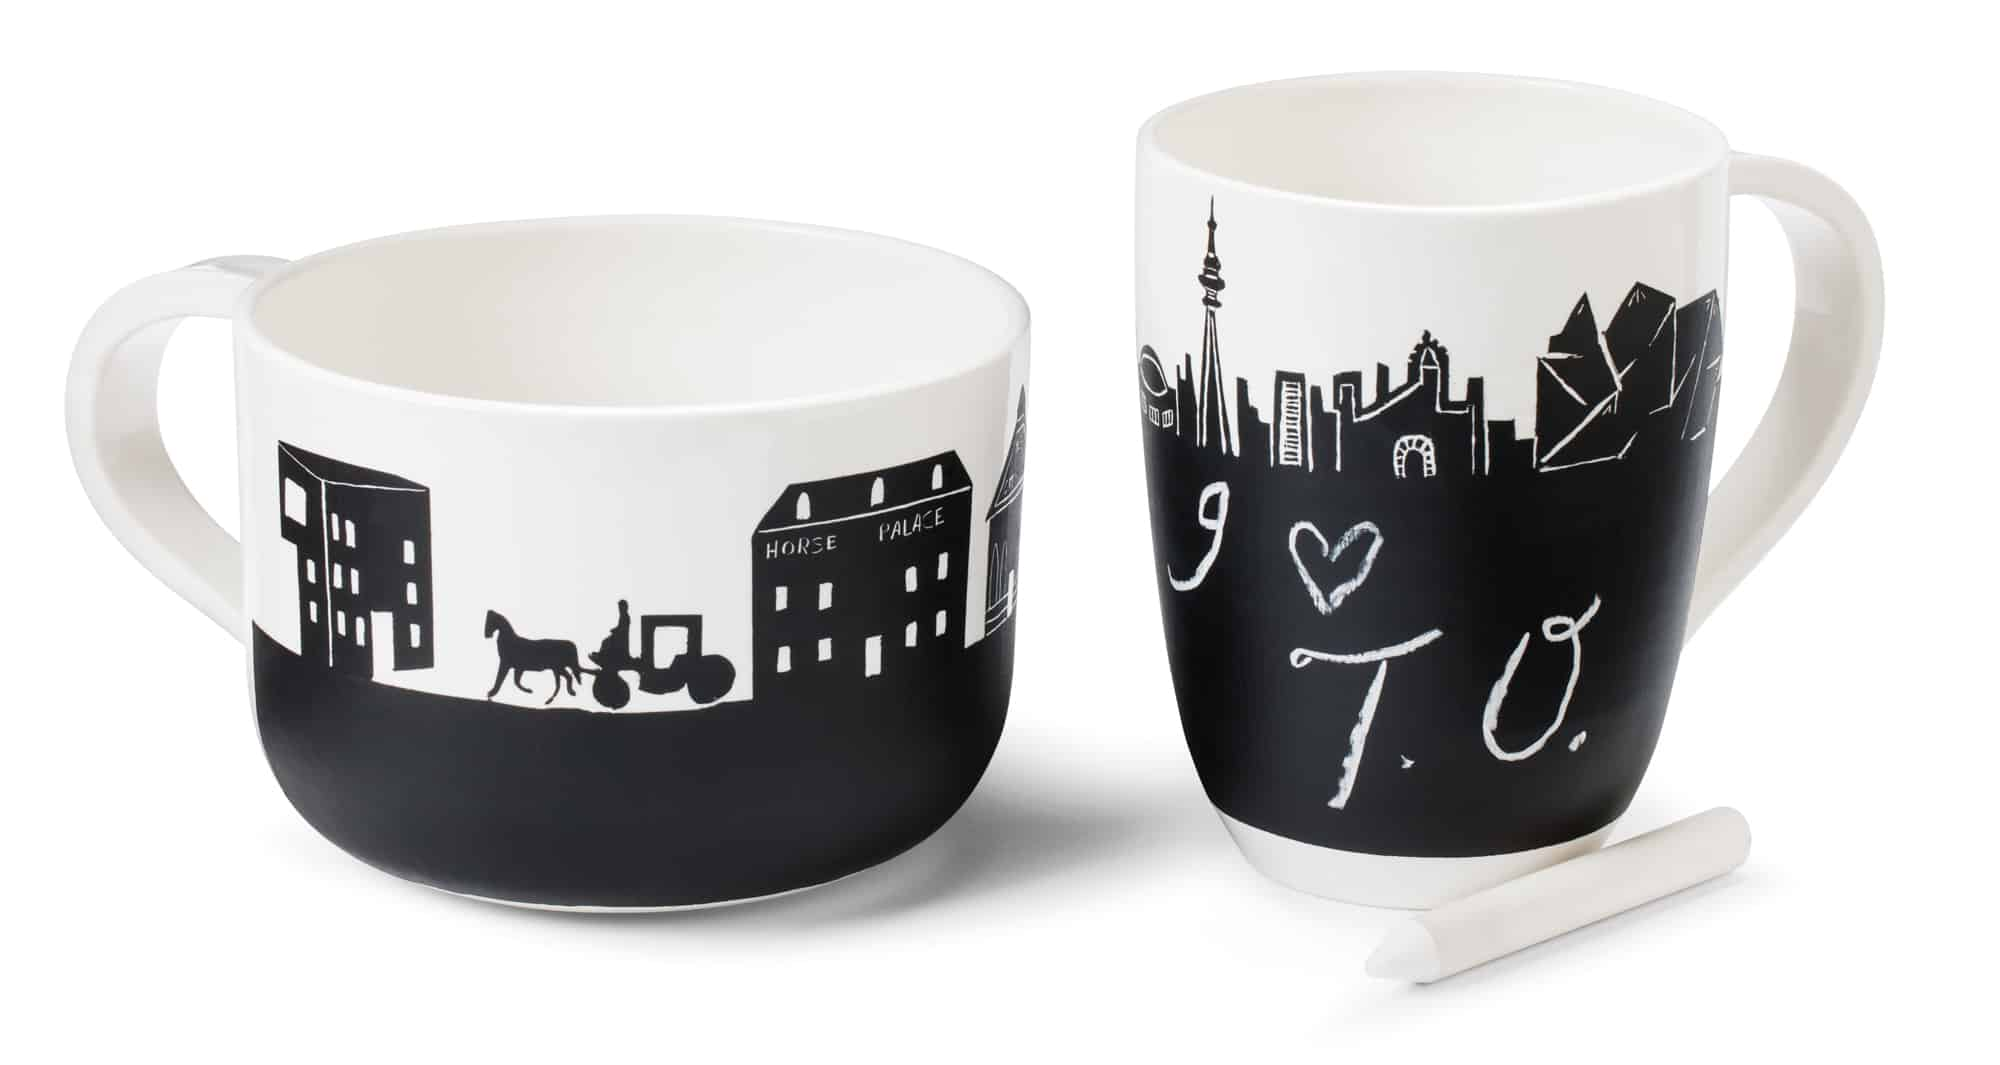 TO & MTL skyline mugs $55 each by Aurélia Turon-Lagot